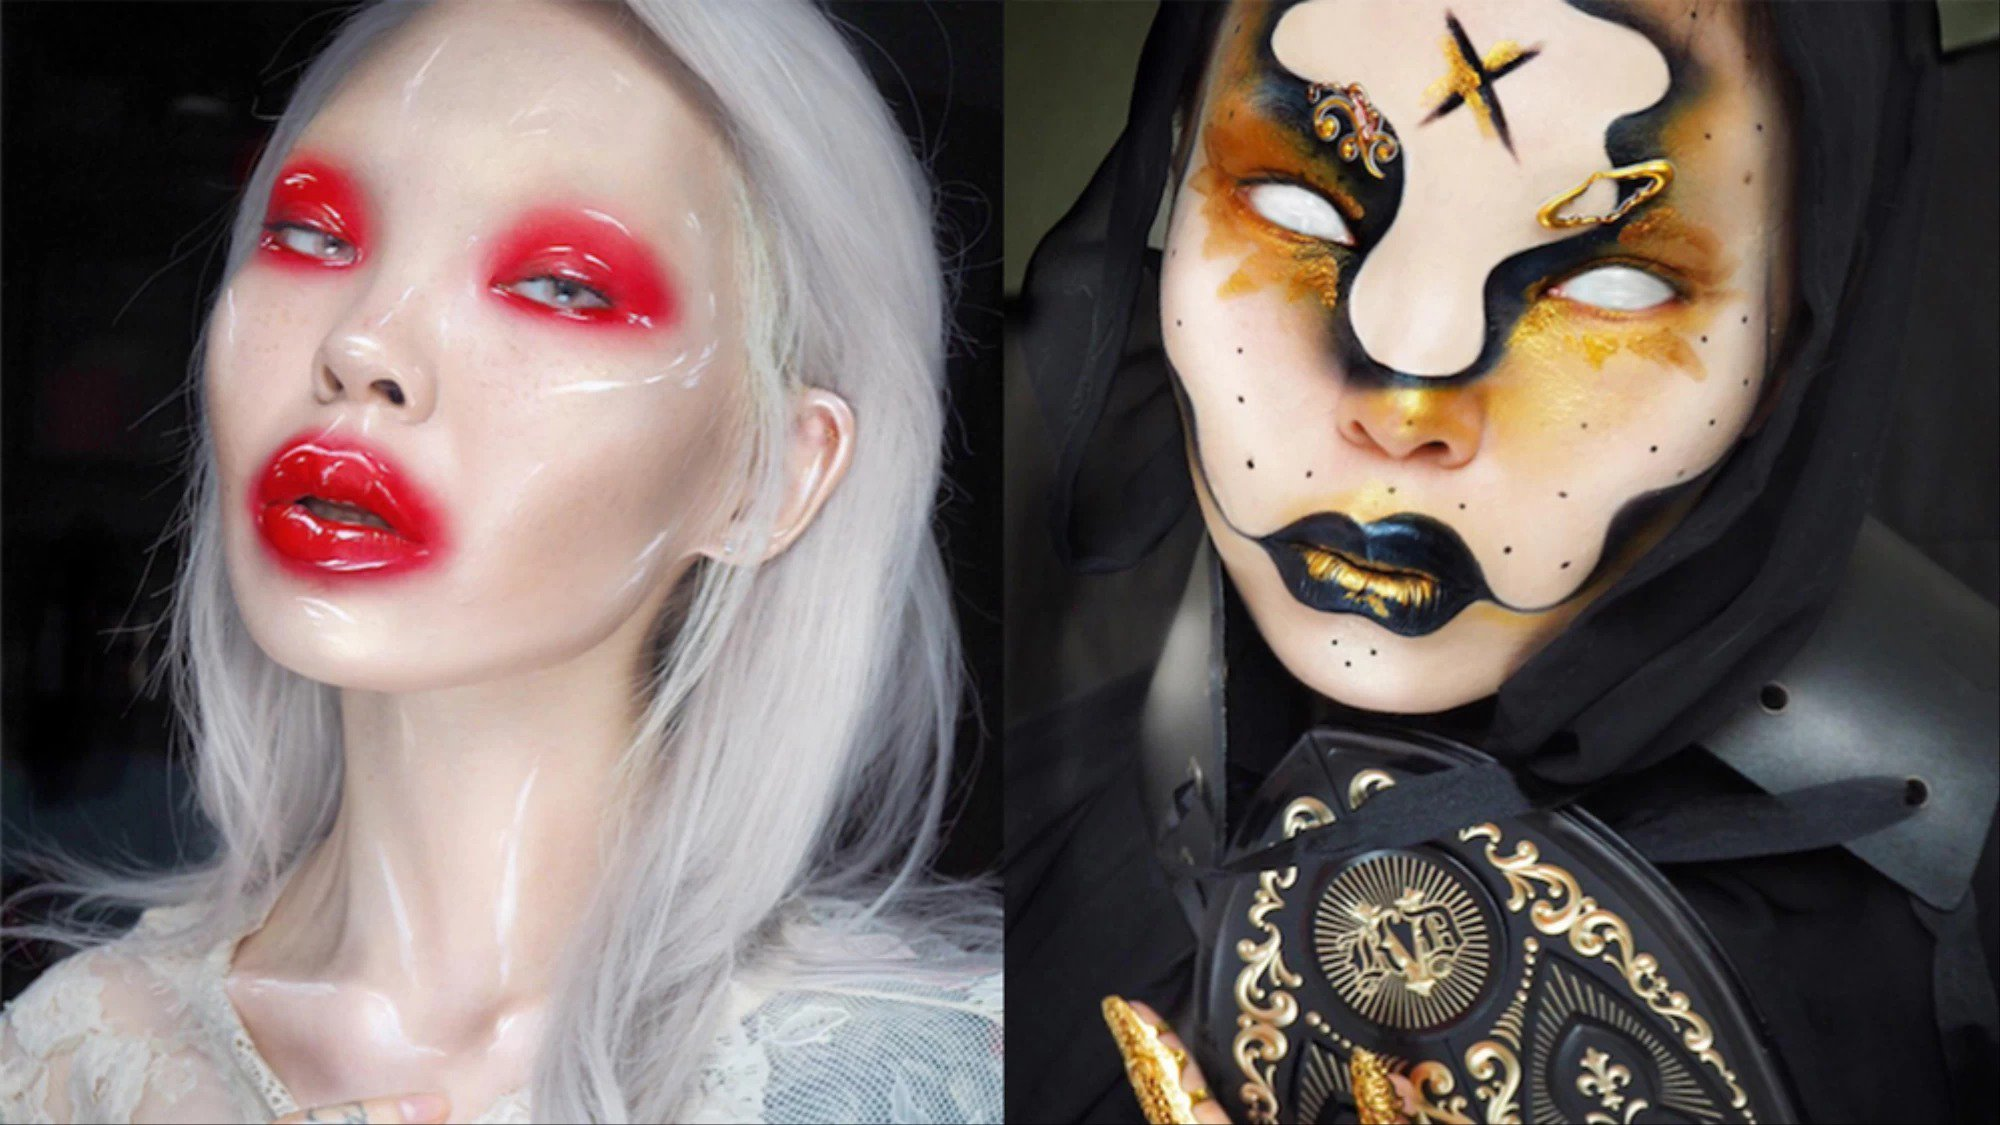 This make-up artist is redefining beauty with her extreme looks https://t.co/jyQ2kIdEk1 https://t.co/oFUXHJB4Vw